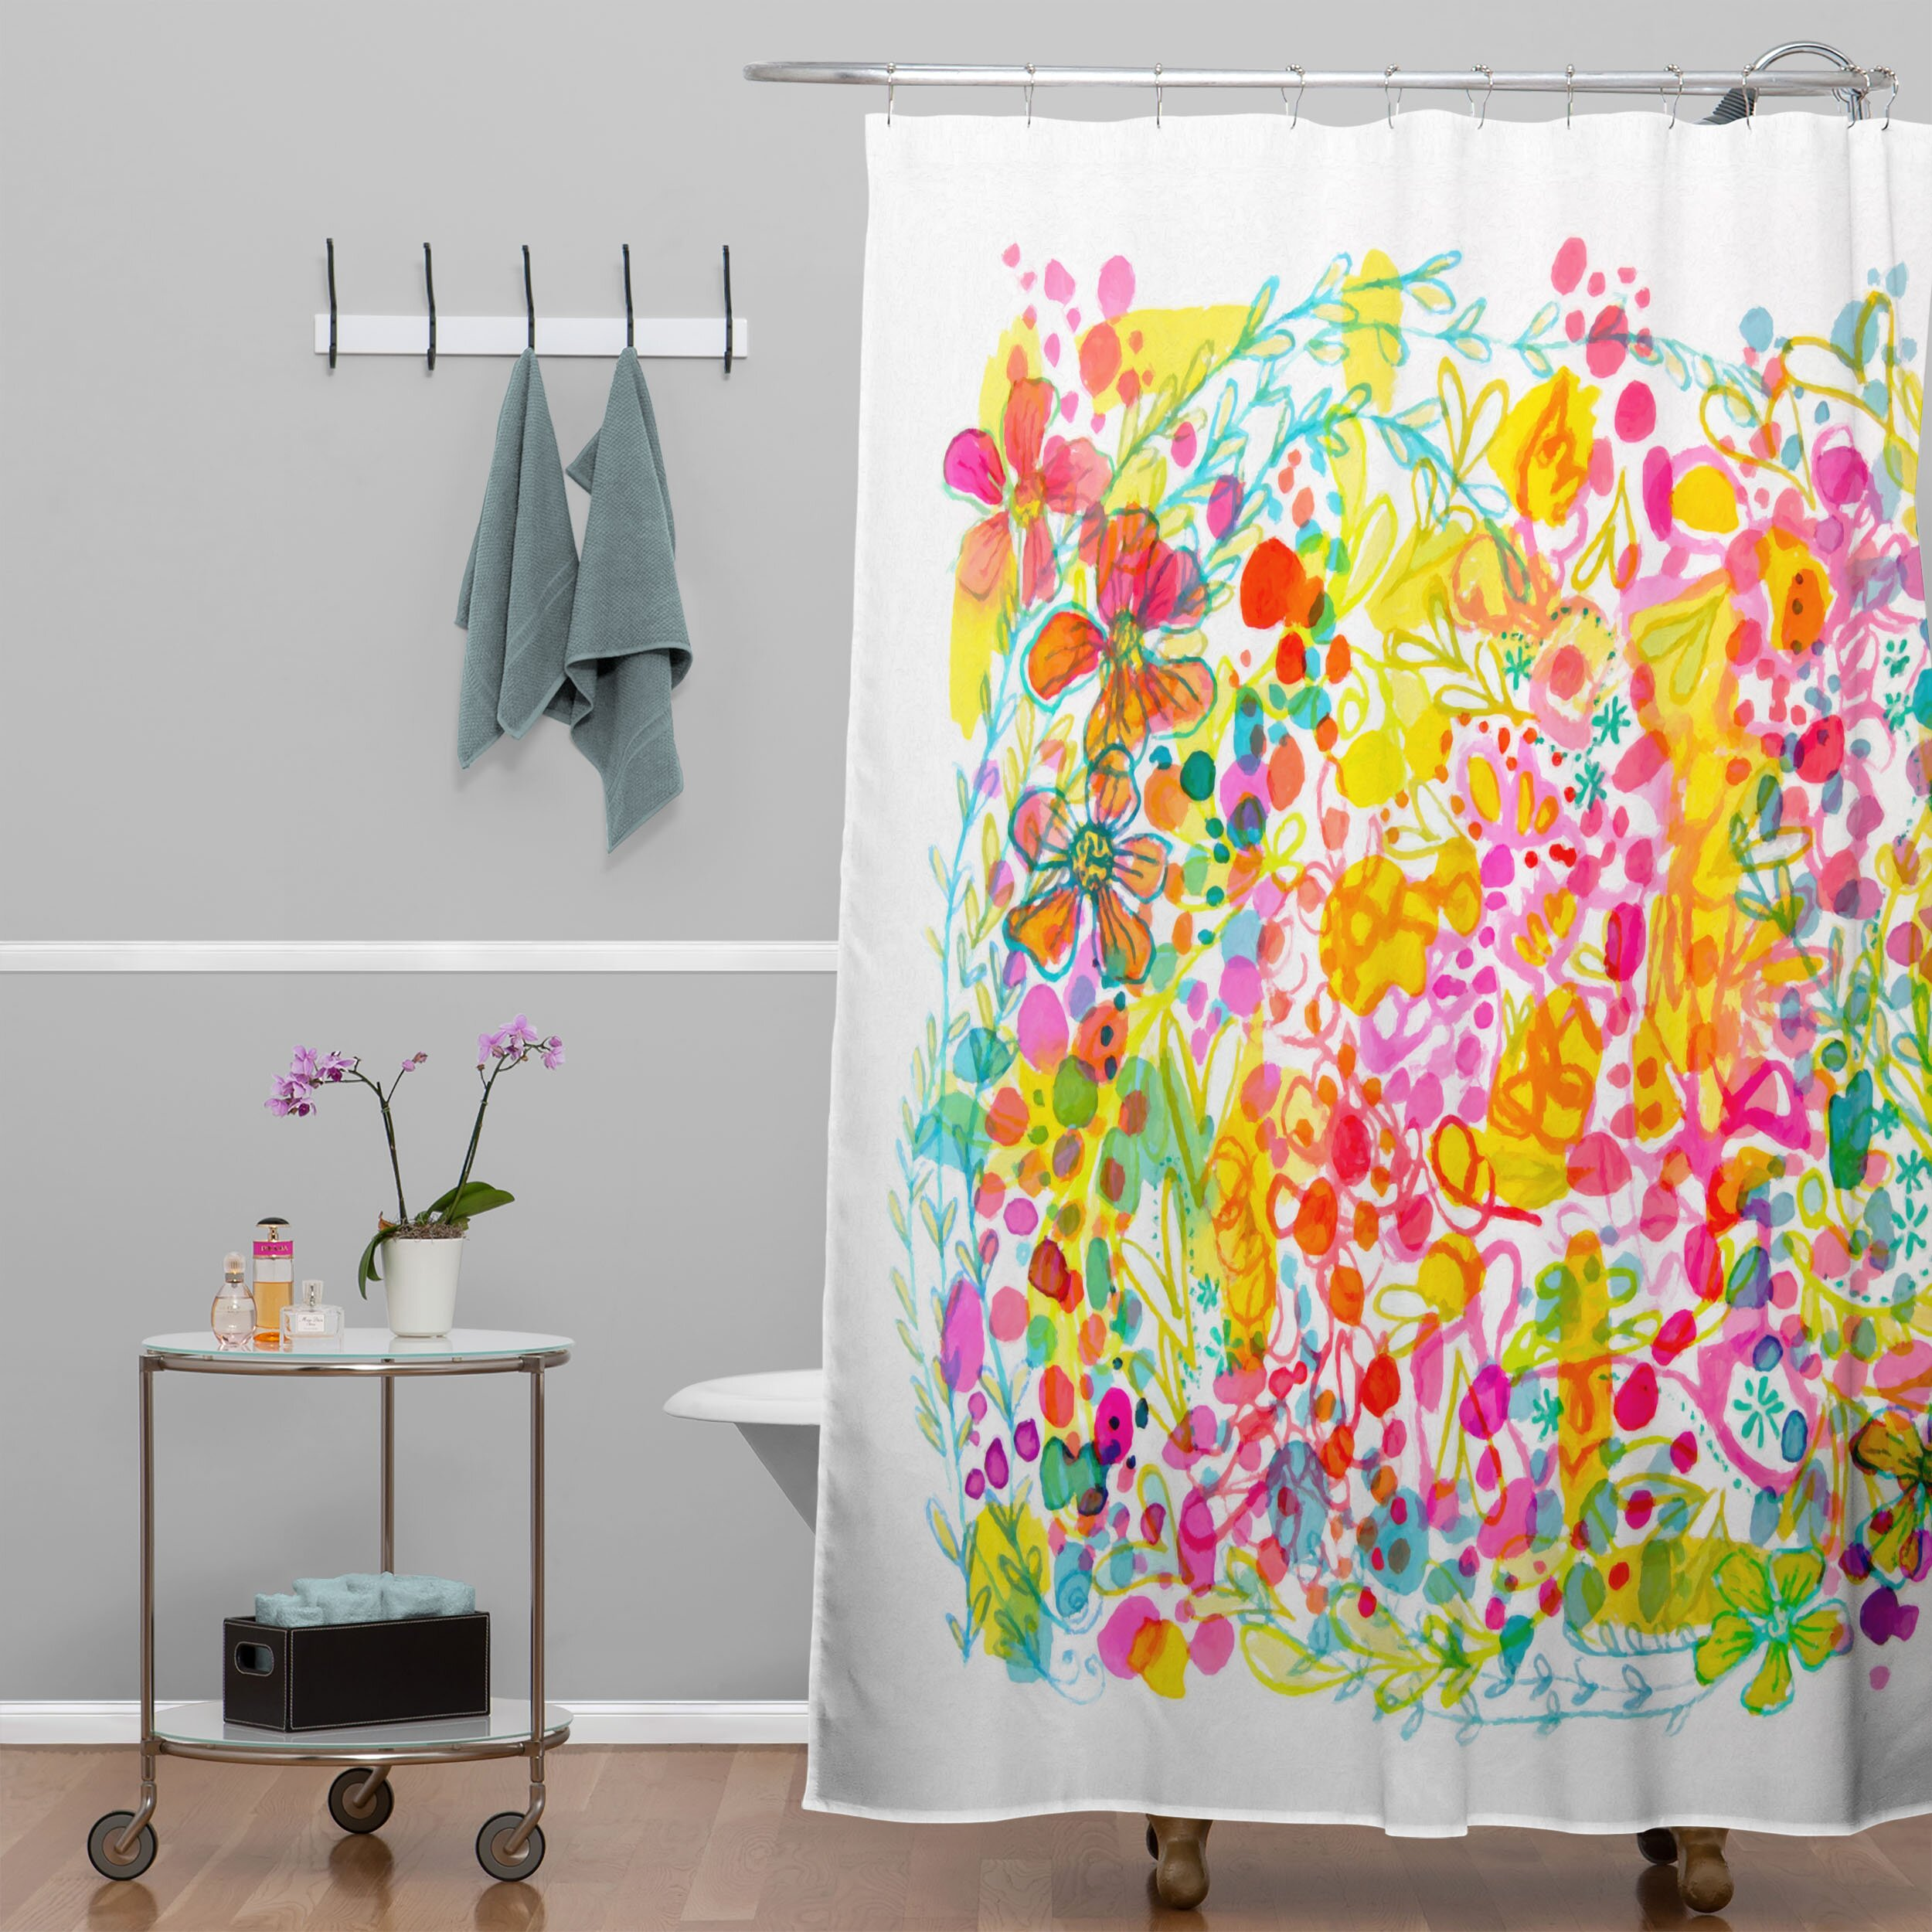 Better homes and garden shower curtain 2